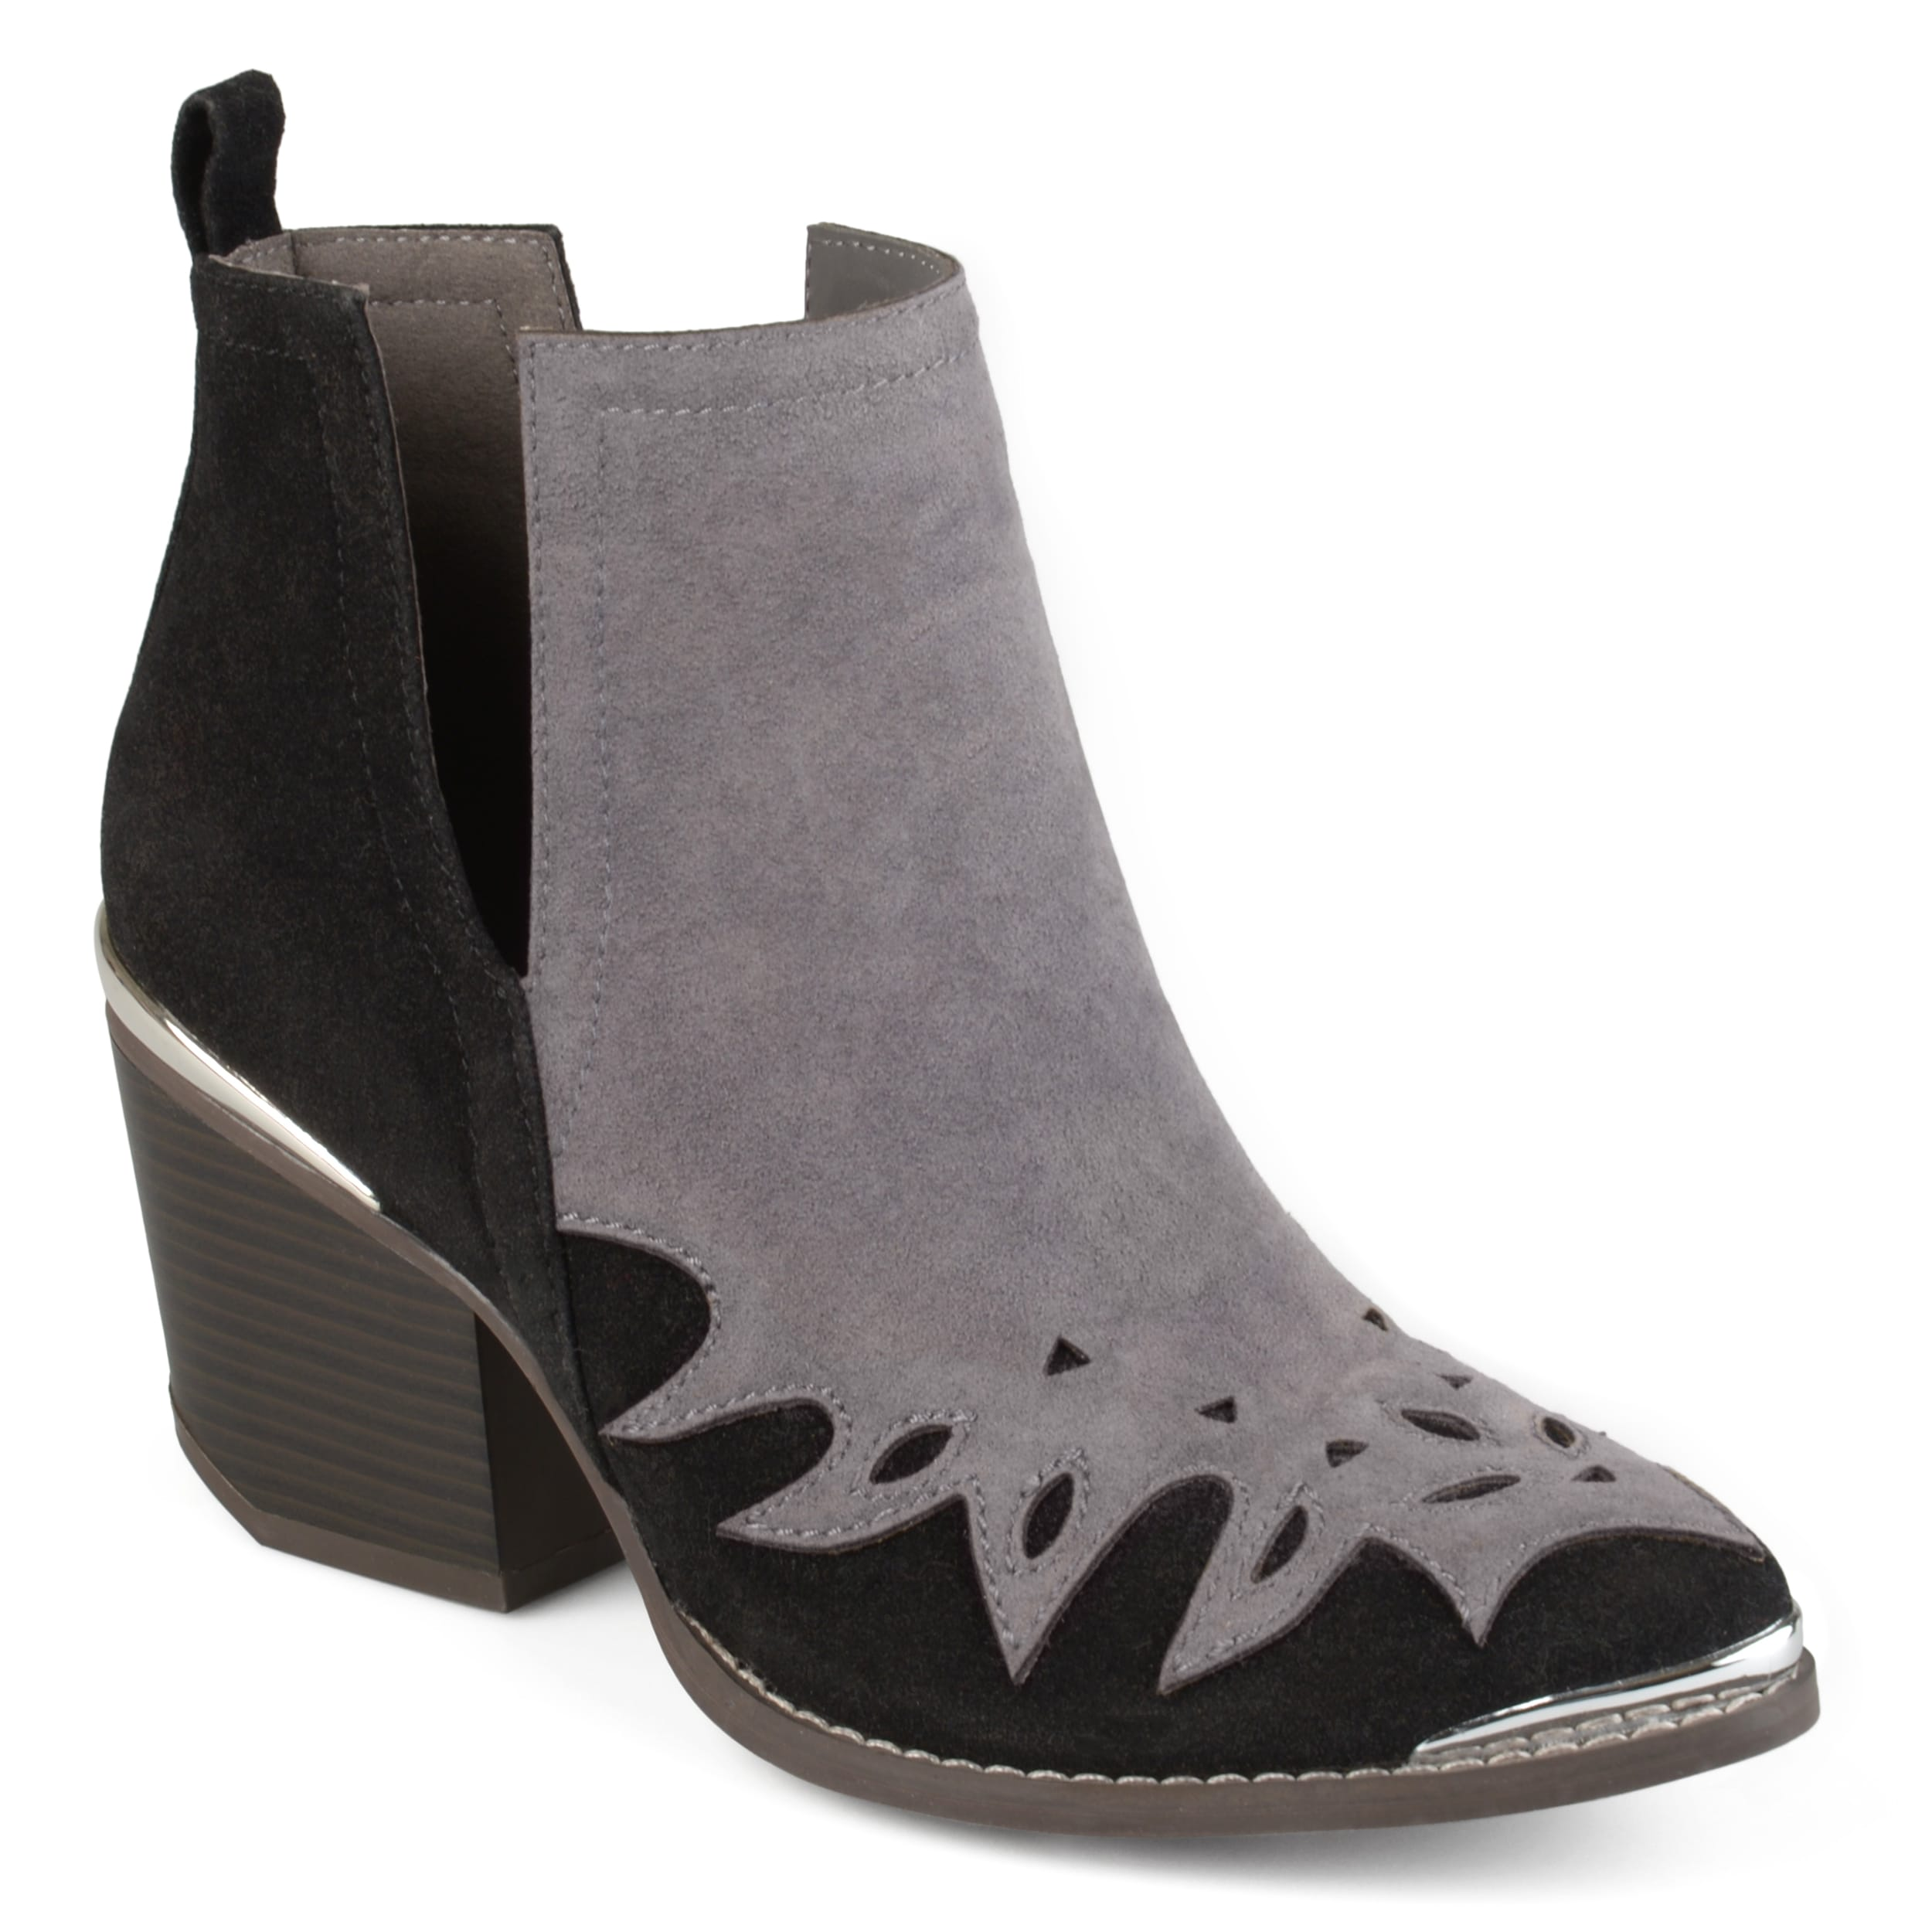 Journee collection Women's 'Dotson' Stacked Wood Heel Wes...